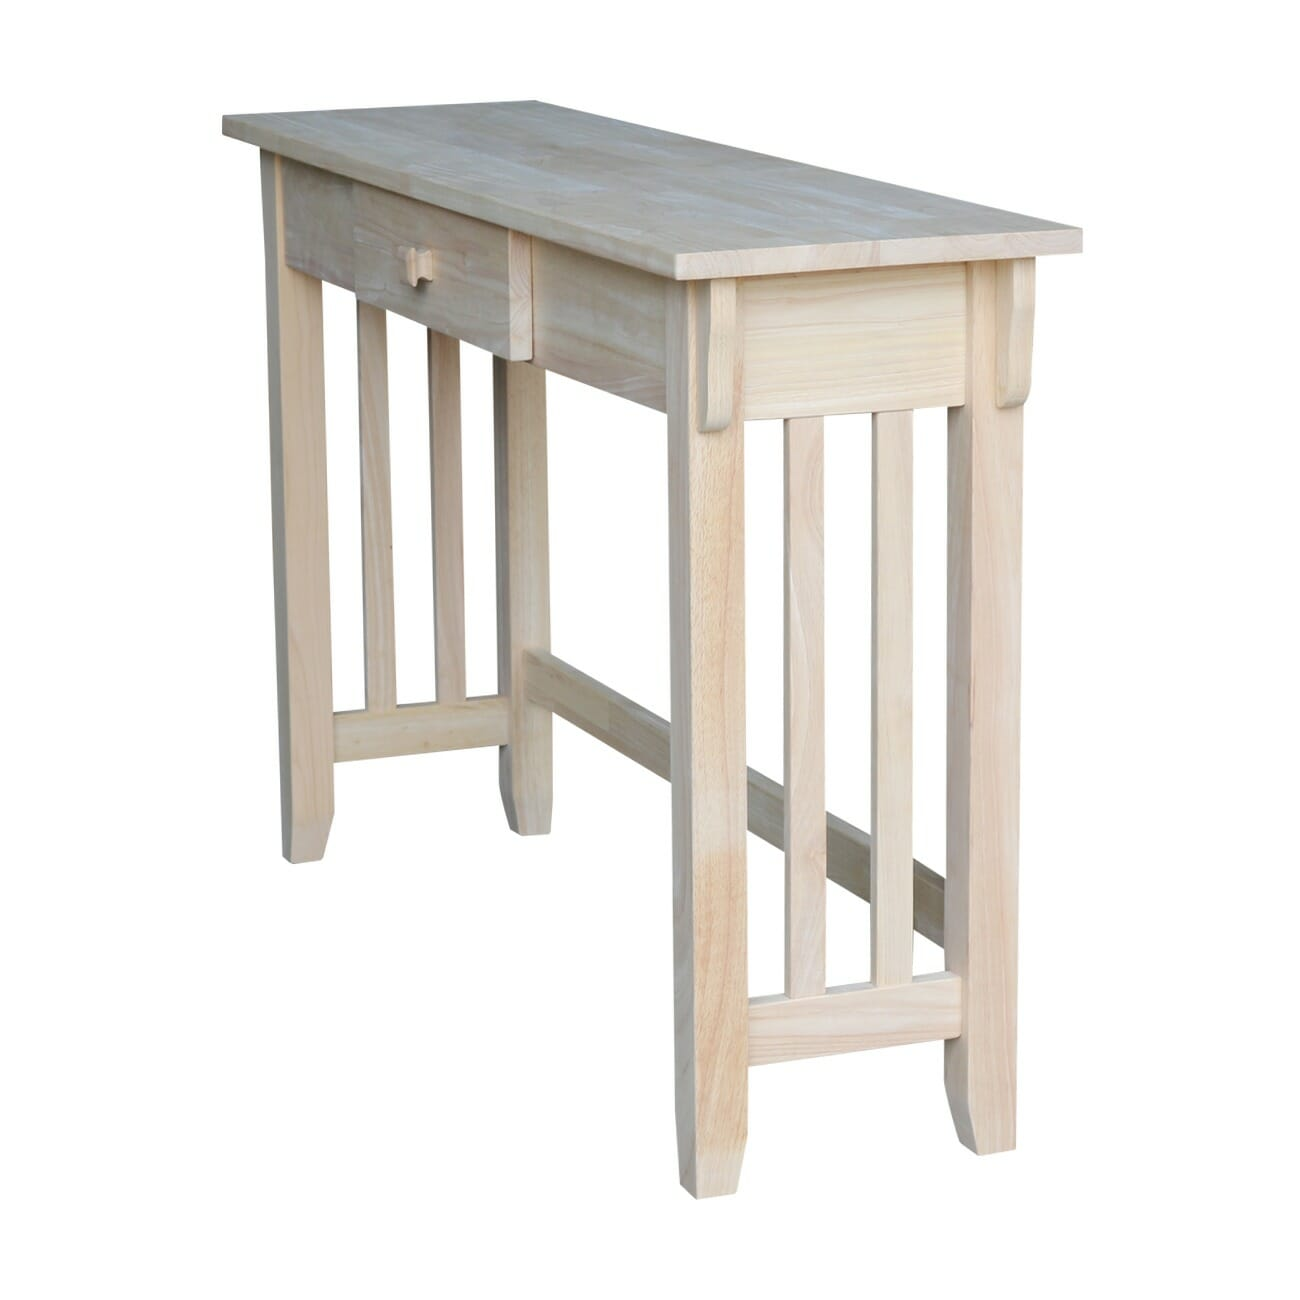 Ot 61s Mission Sofa Table With Drawer